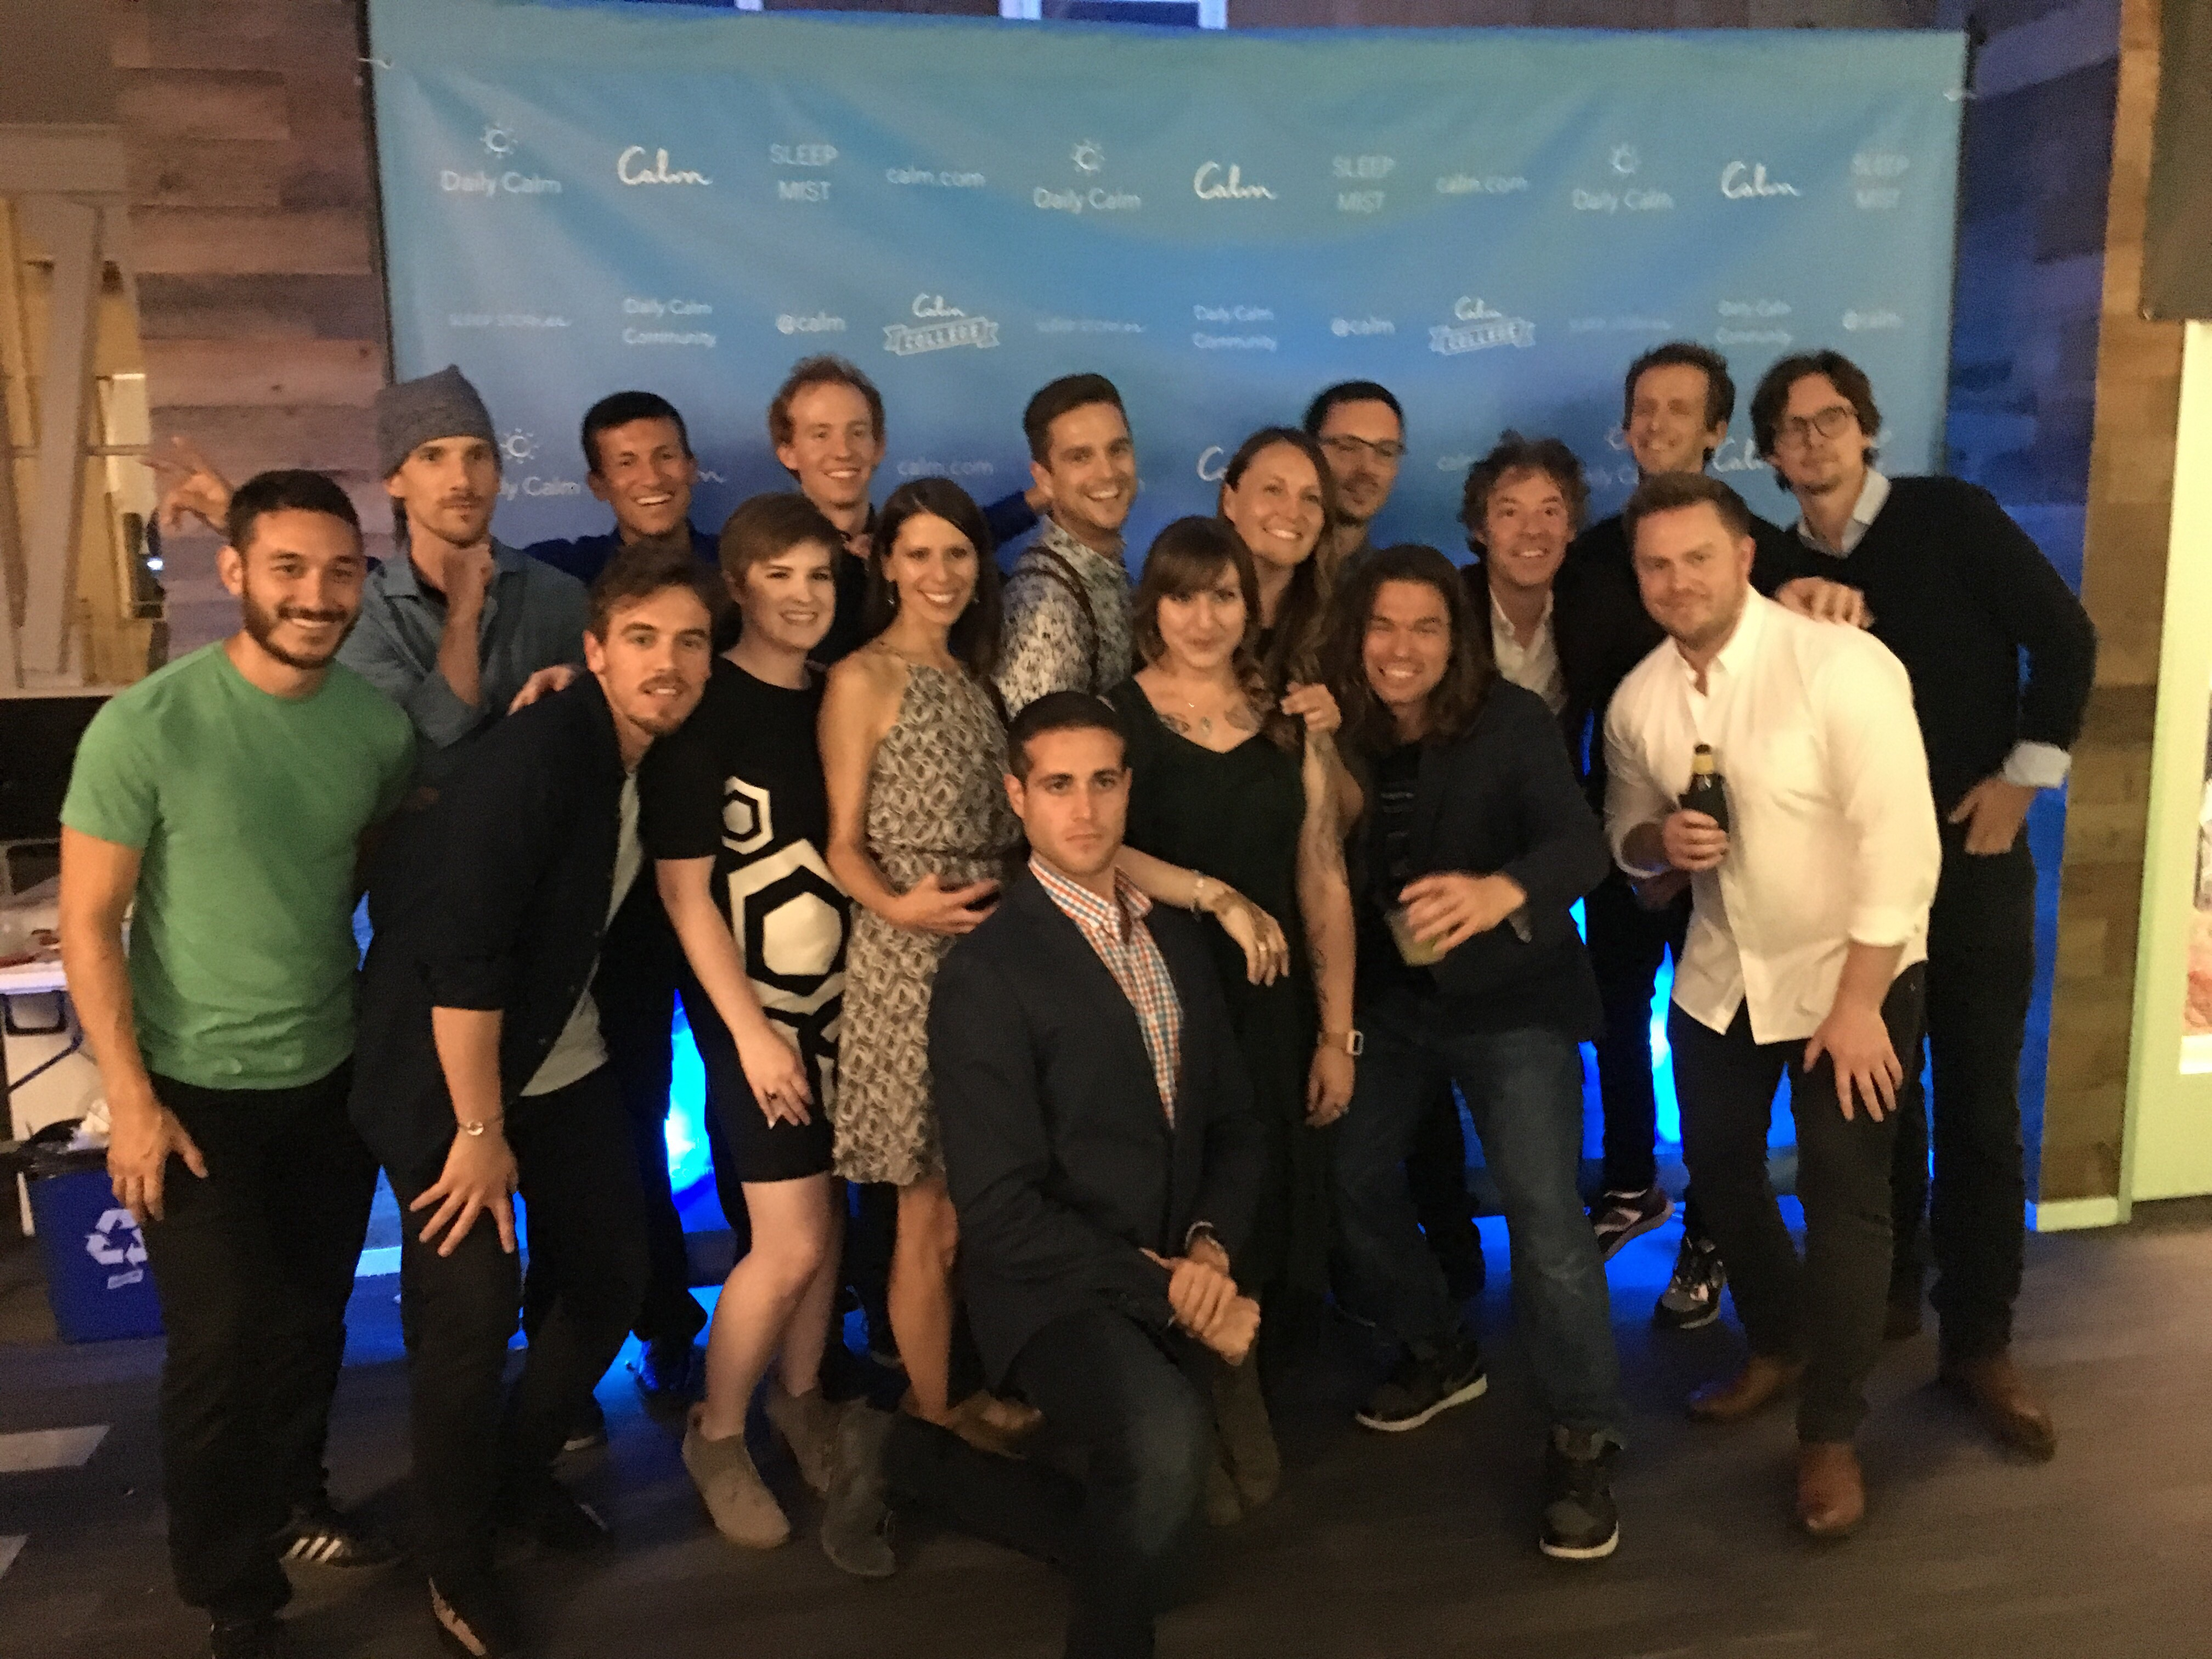 Image of the Calm team during their 10 million user party